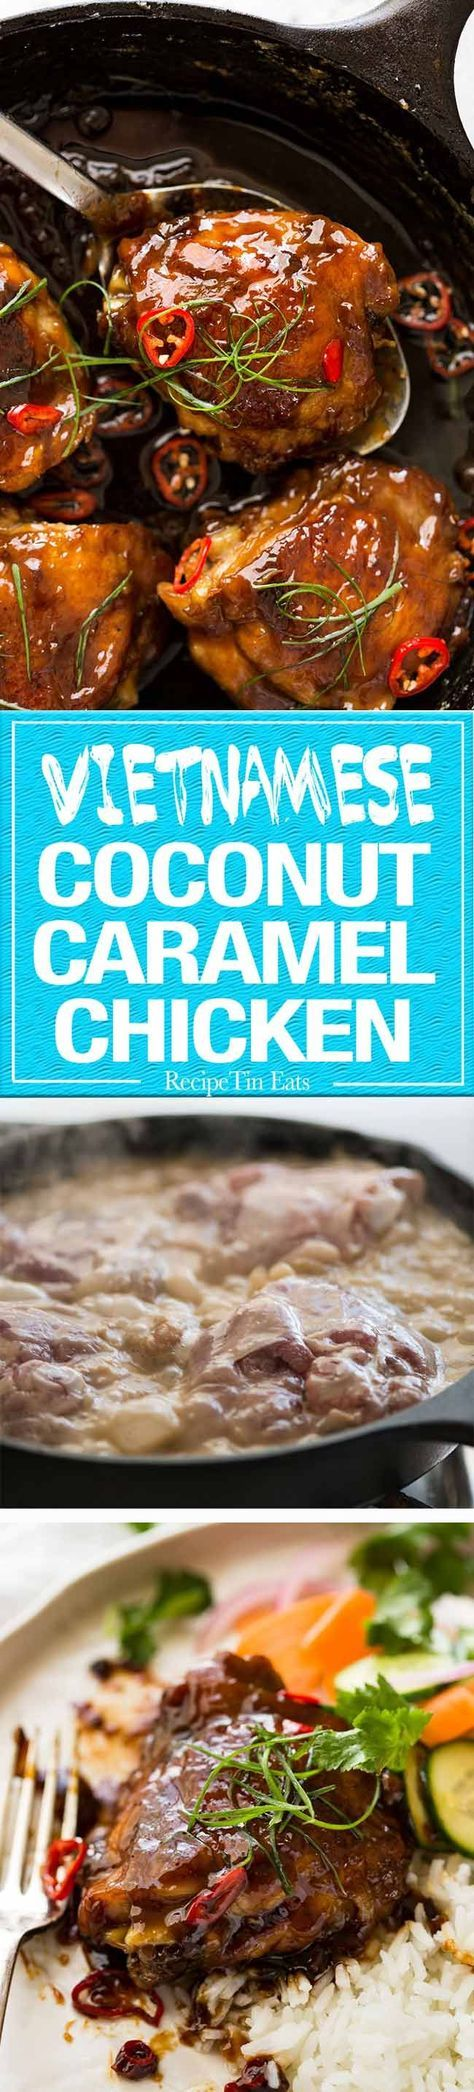 147 best Recipe images on Pinterest | Cooking food, Cooking recipes ...